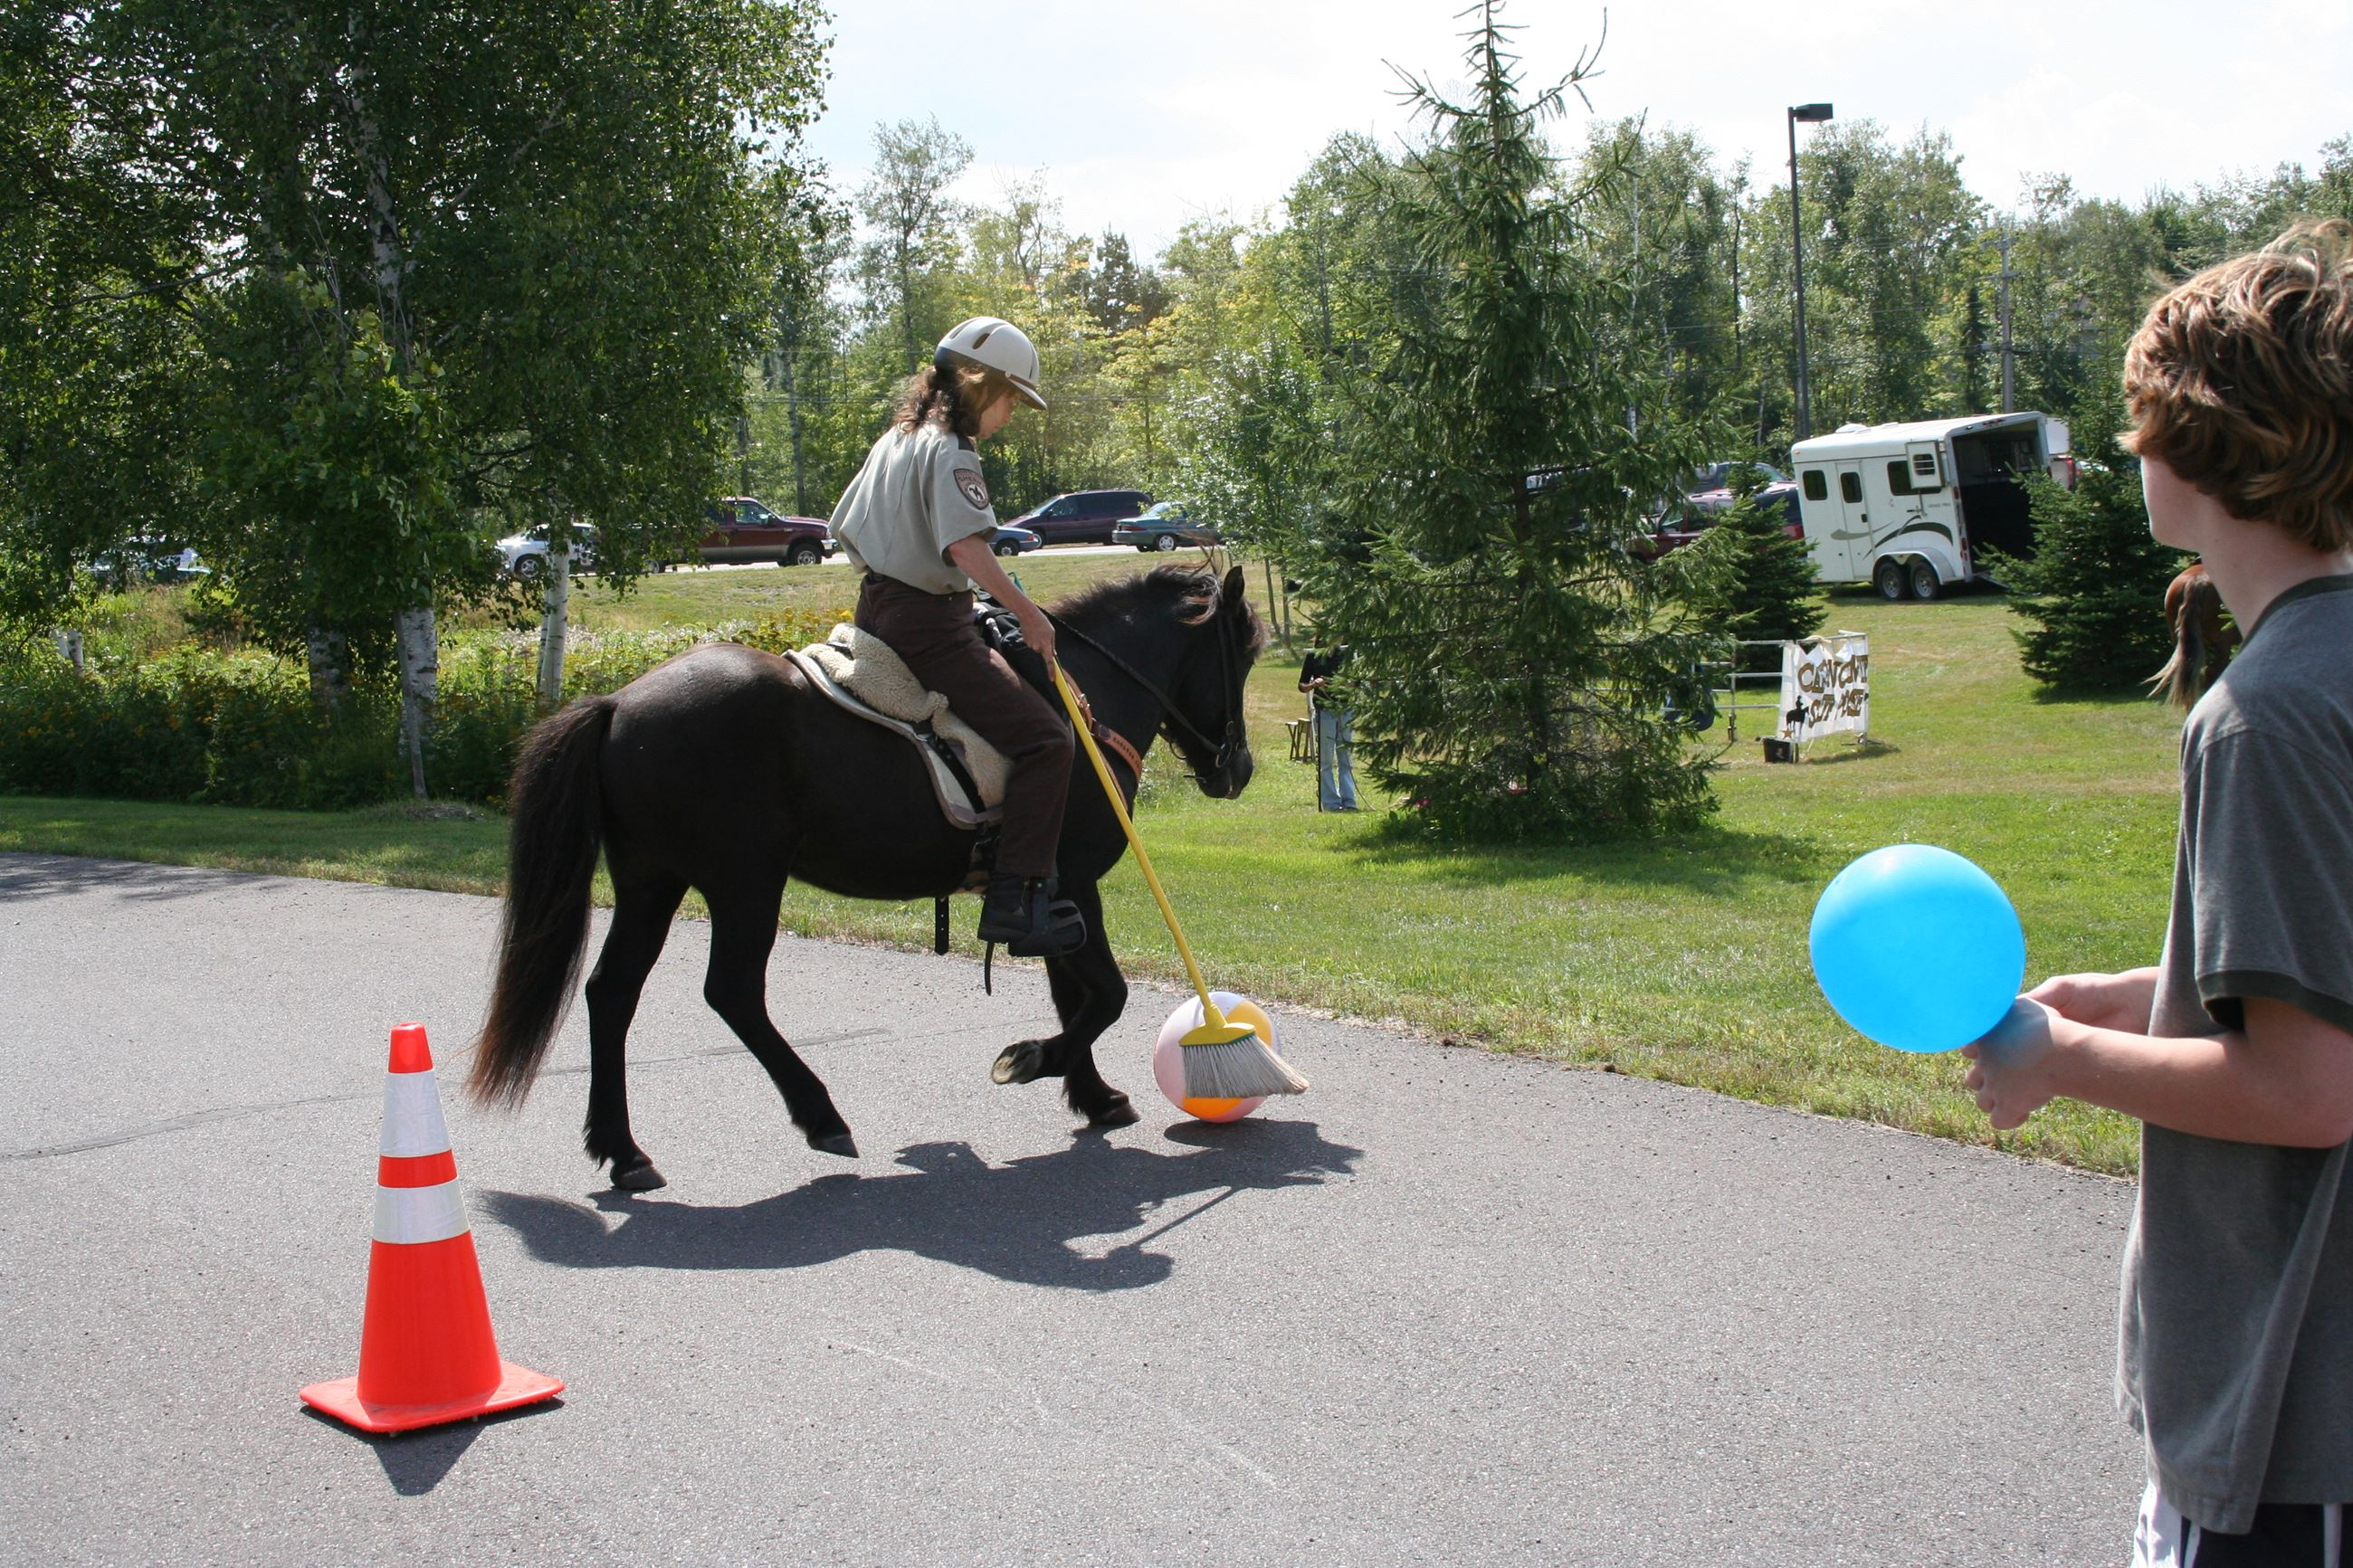 Mounted officer with broom and beach ball for obstacle course